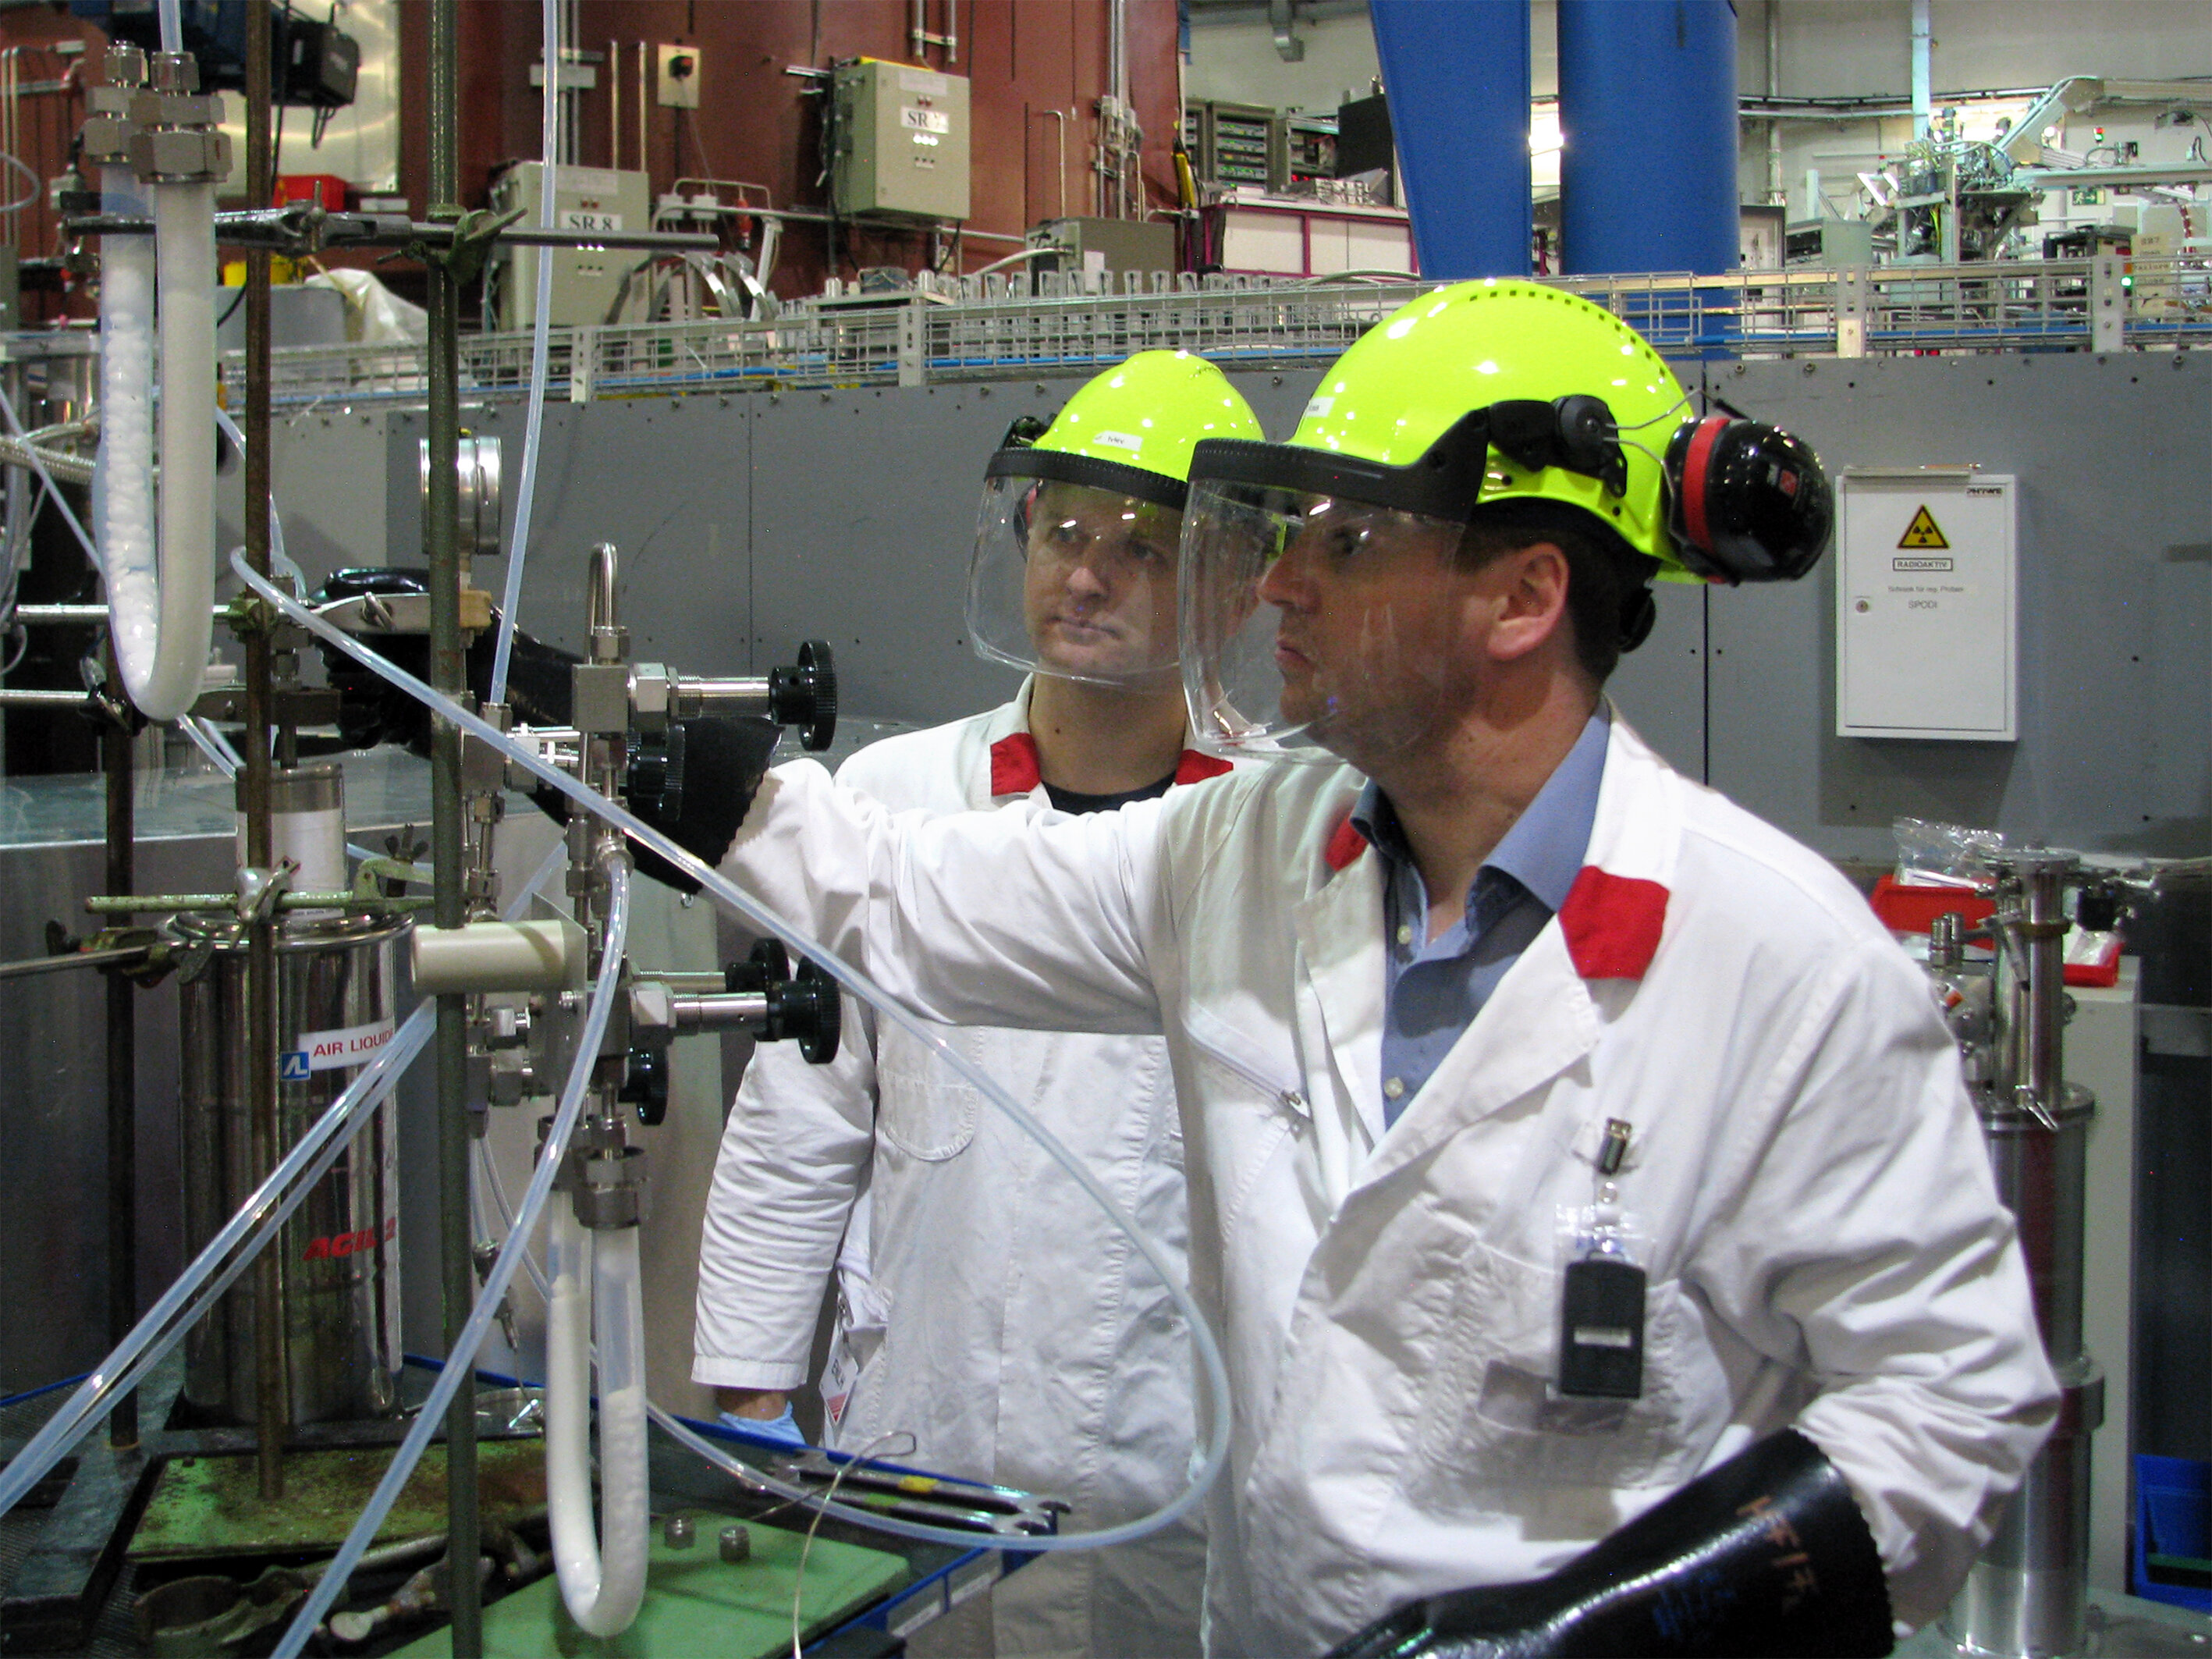 Investigations with neutrons settle scientific dispute about the structure of fluorine